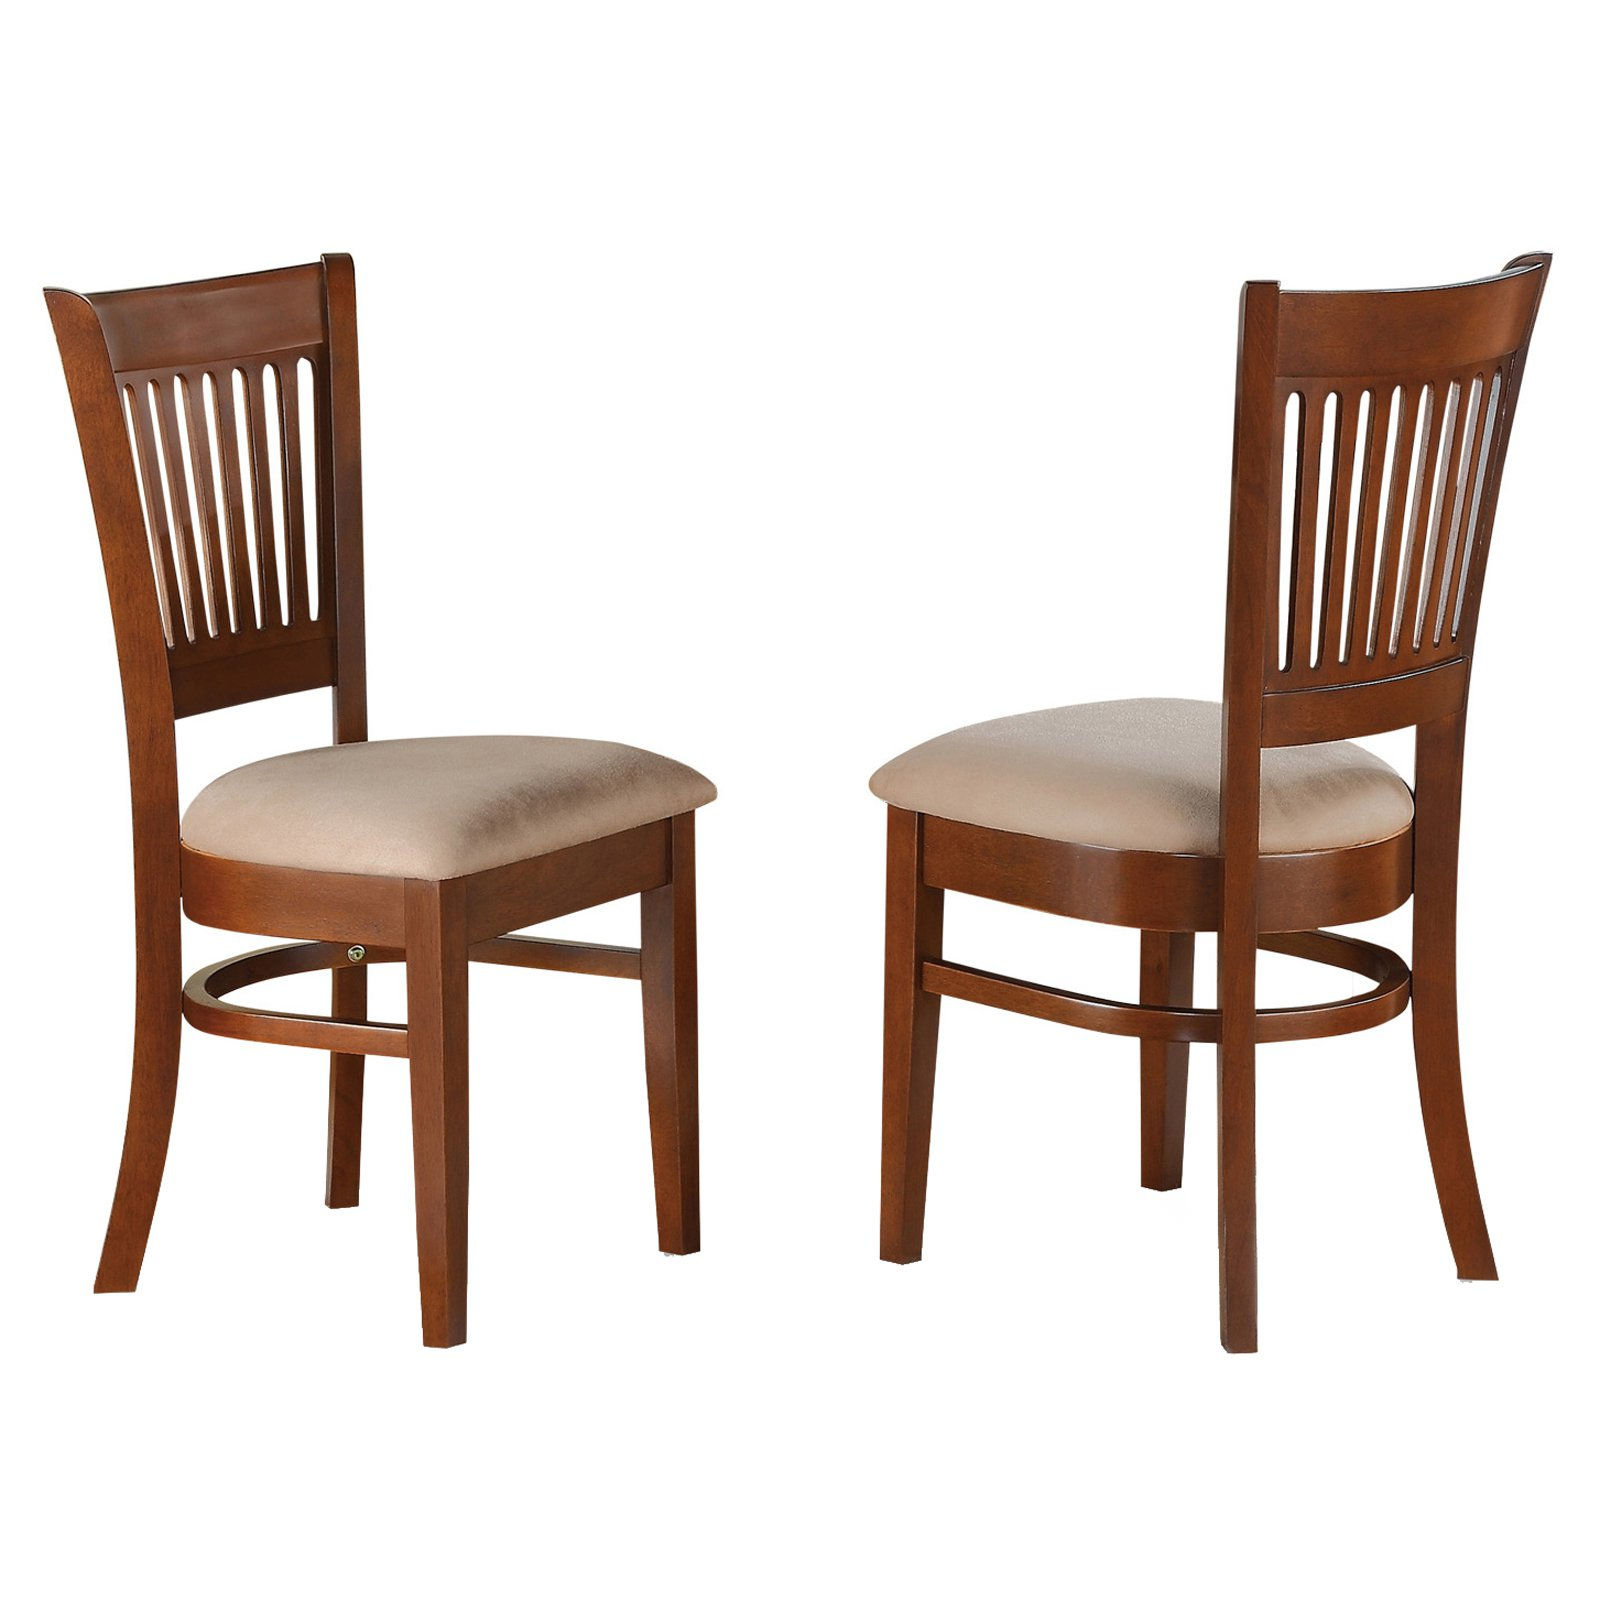 East West Furniture Vancouver Dining Chair With Microfiber